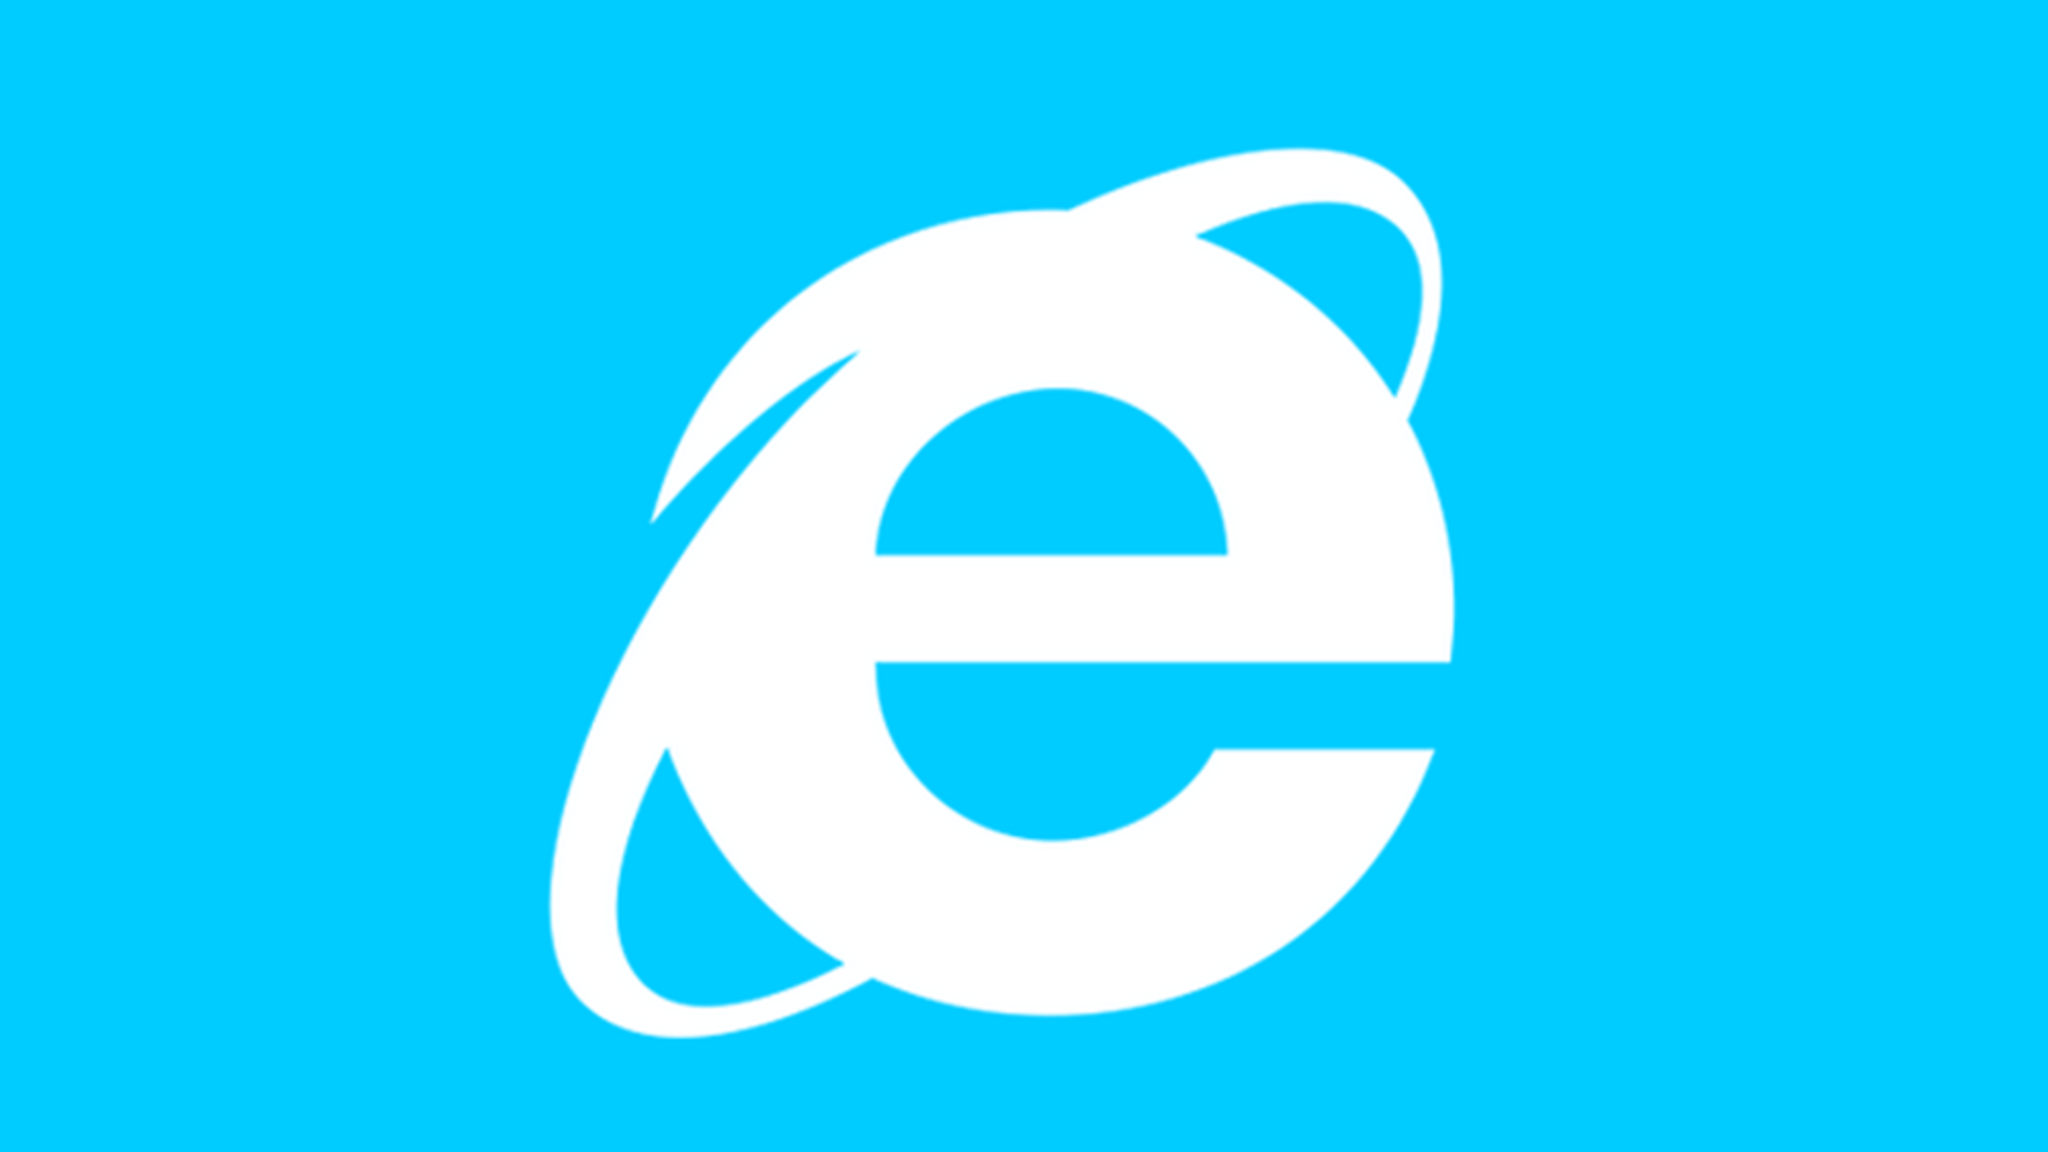 Internet explorer pictures showing red x Internet images are not being downloaded. - fo